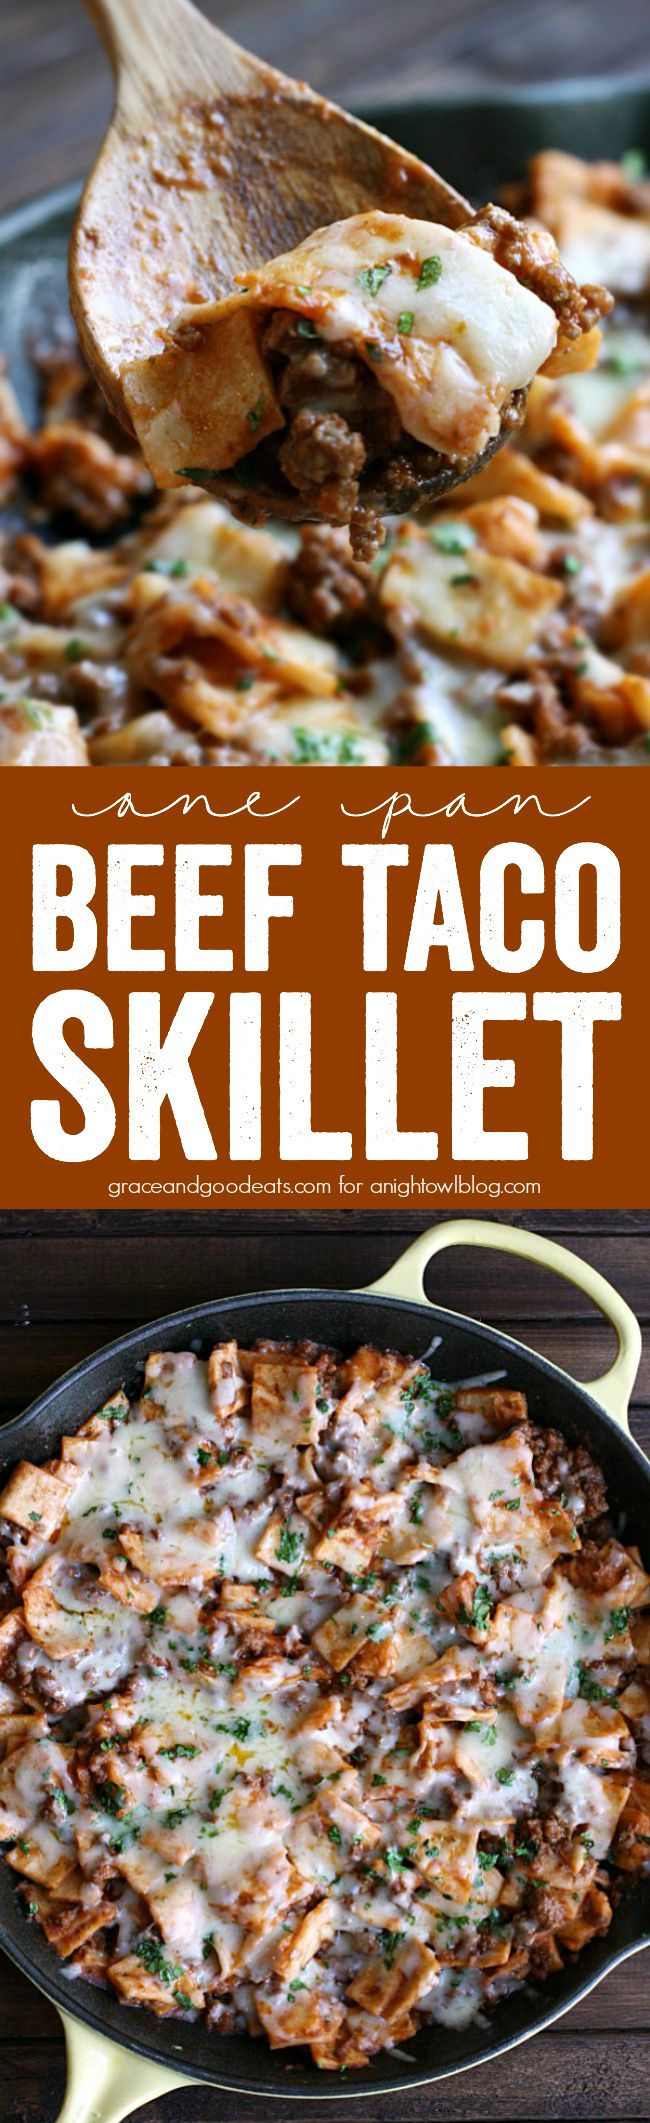 This One Pan Beef Taco Skillet is a super quick, delicious, one-pot meal that's perfect for a busy weeknight!